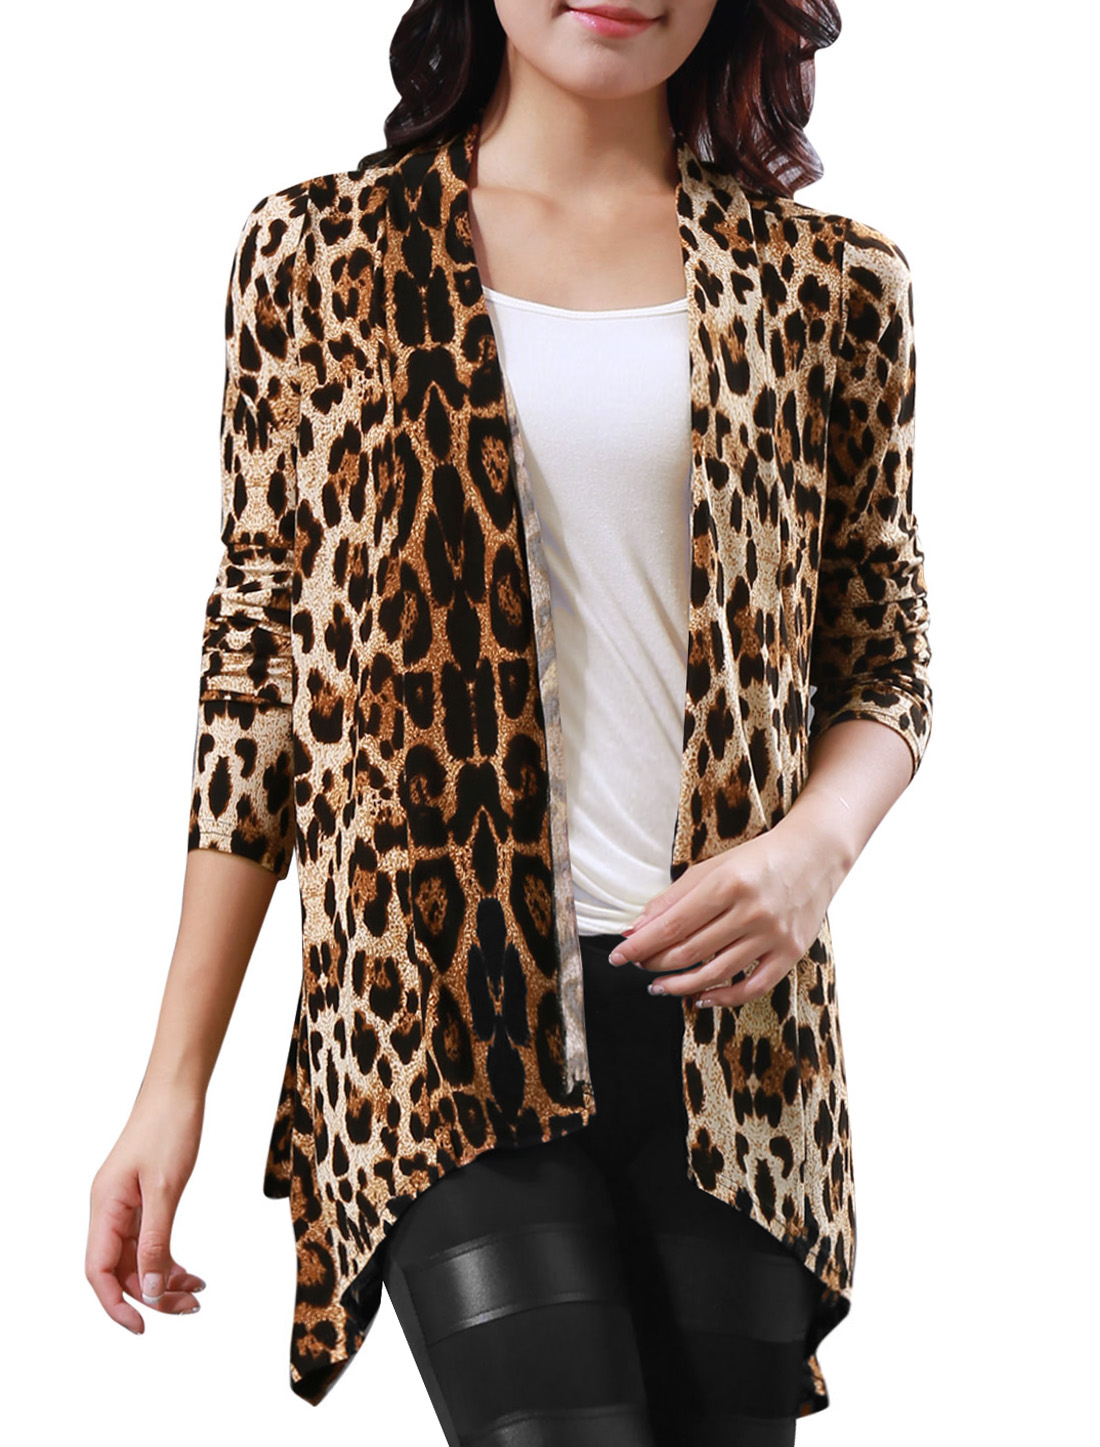 Ladies Beige Coffee Leopard Prints Design Irregular Hem Casual Top Shirt XL